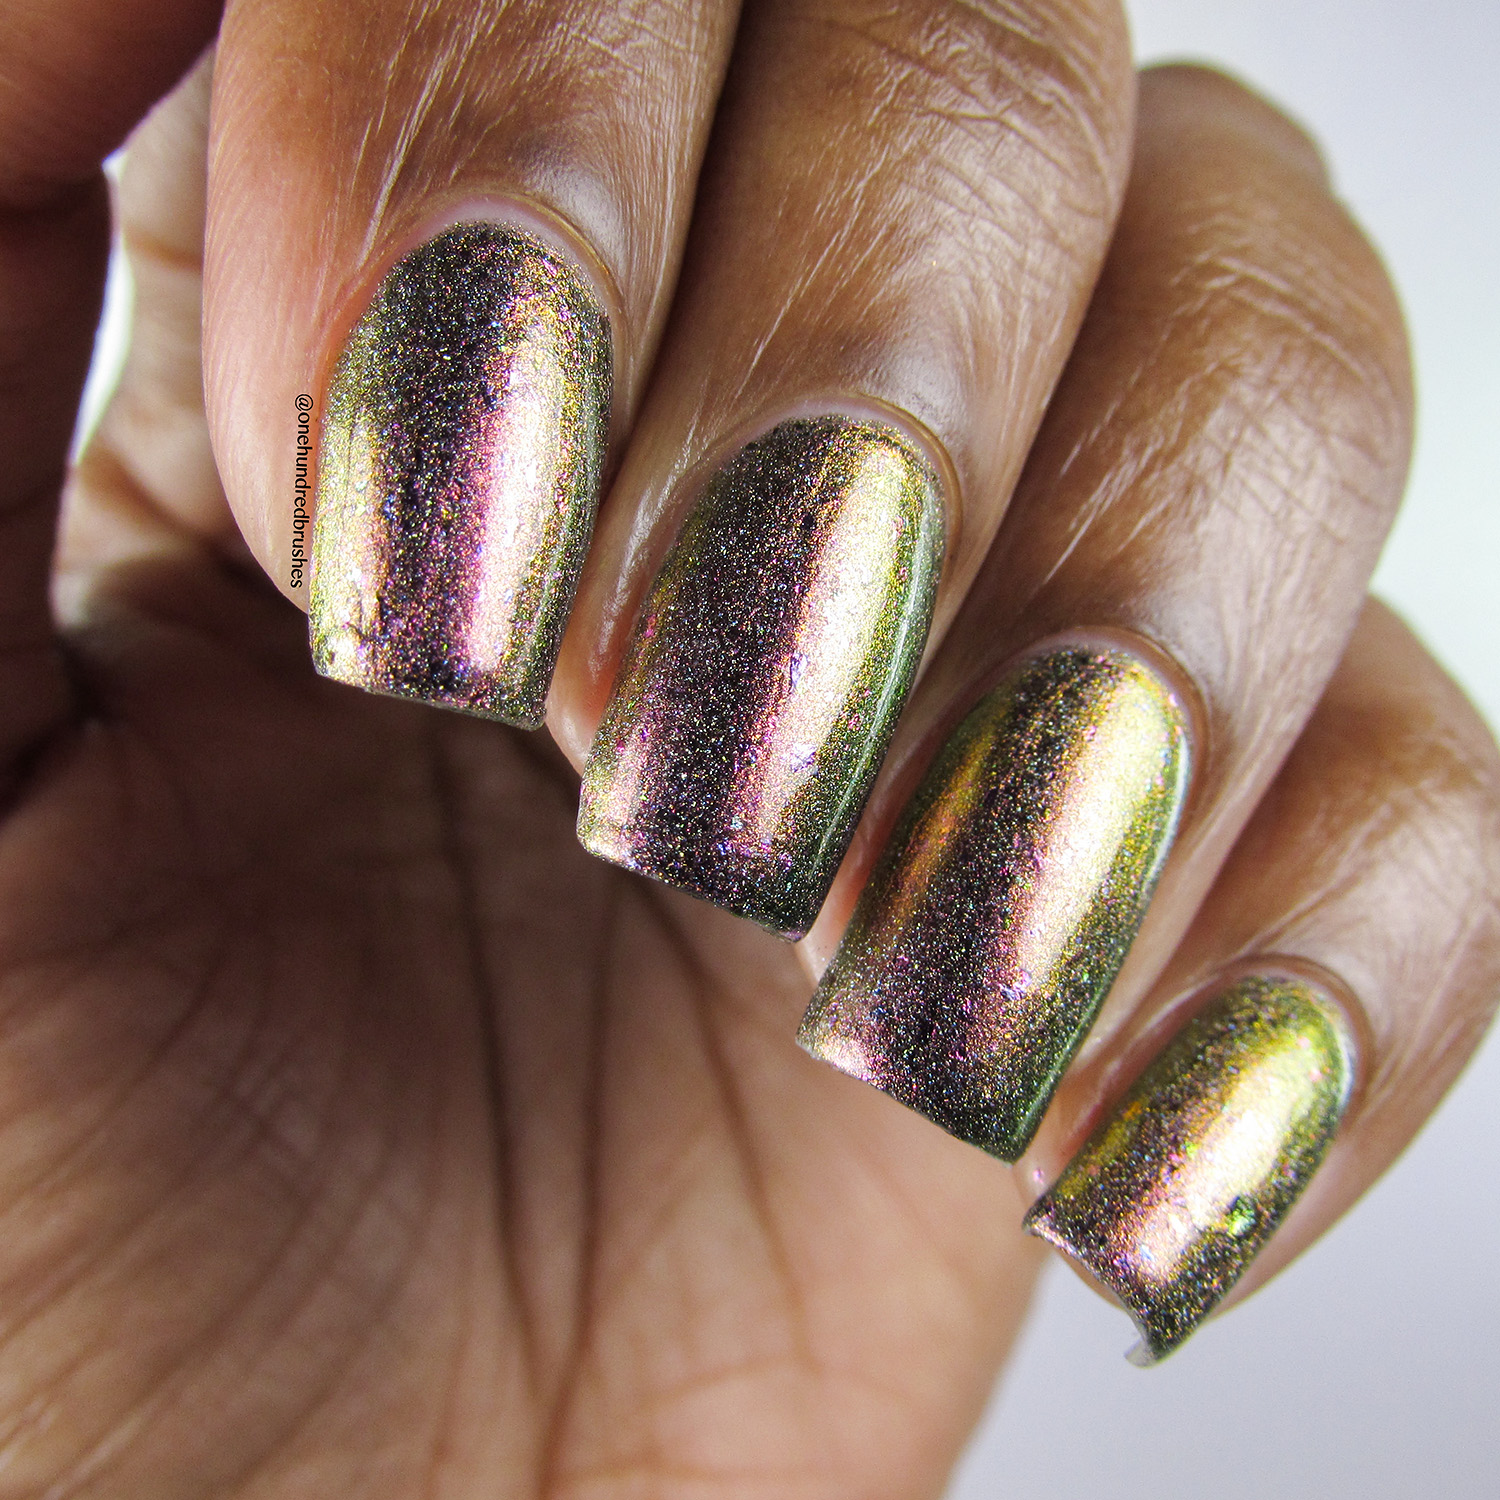 Gamora Doesn't Dance - closeup - Jior Couture - Polish Pickup Apr 2018 - multichrome - holographic